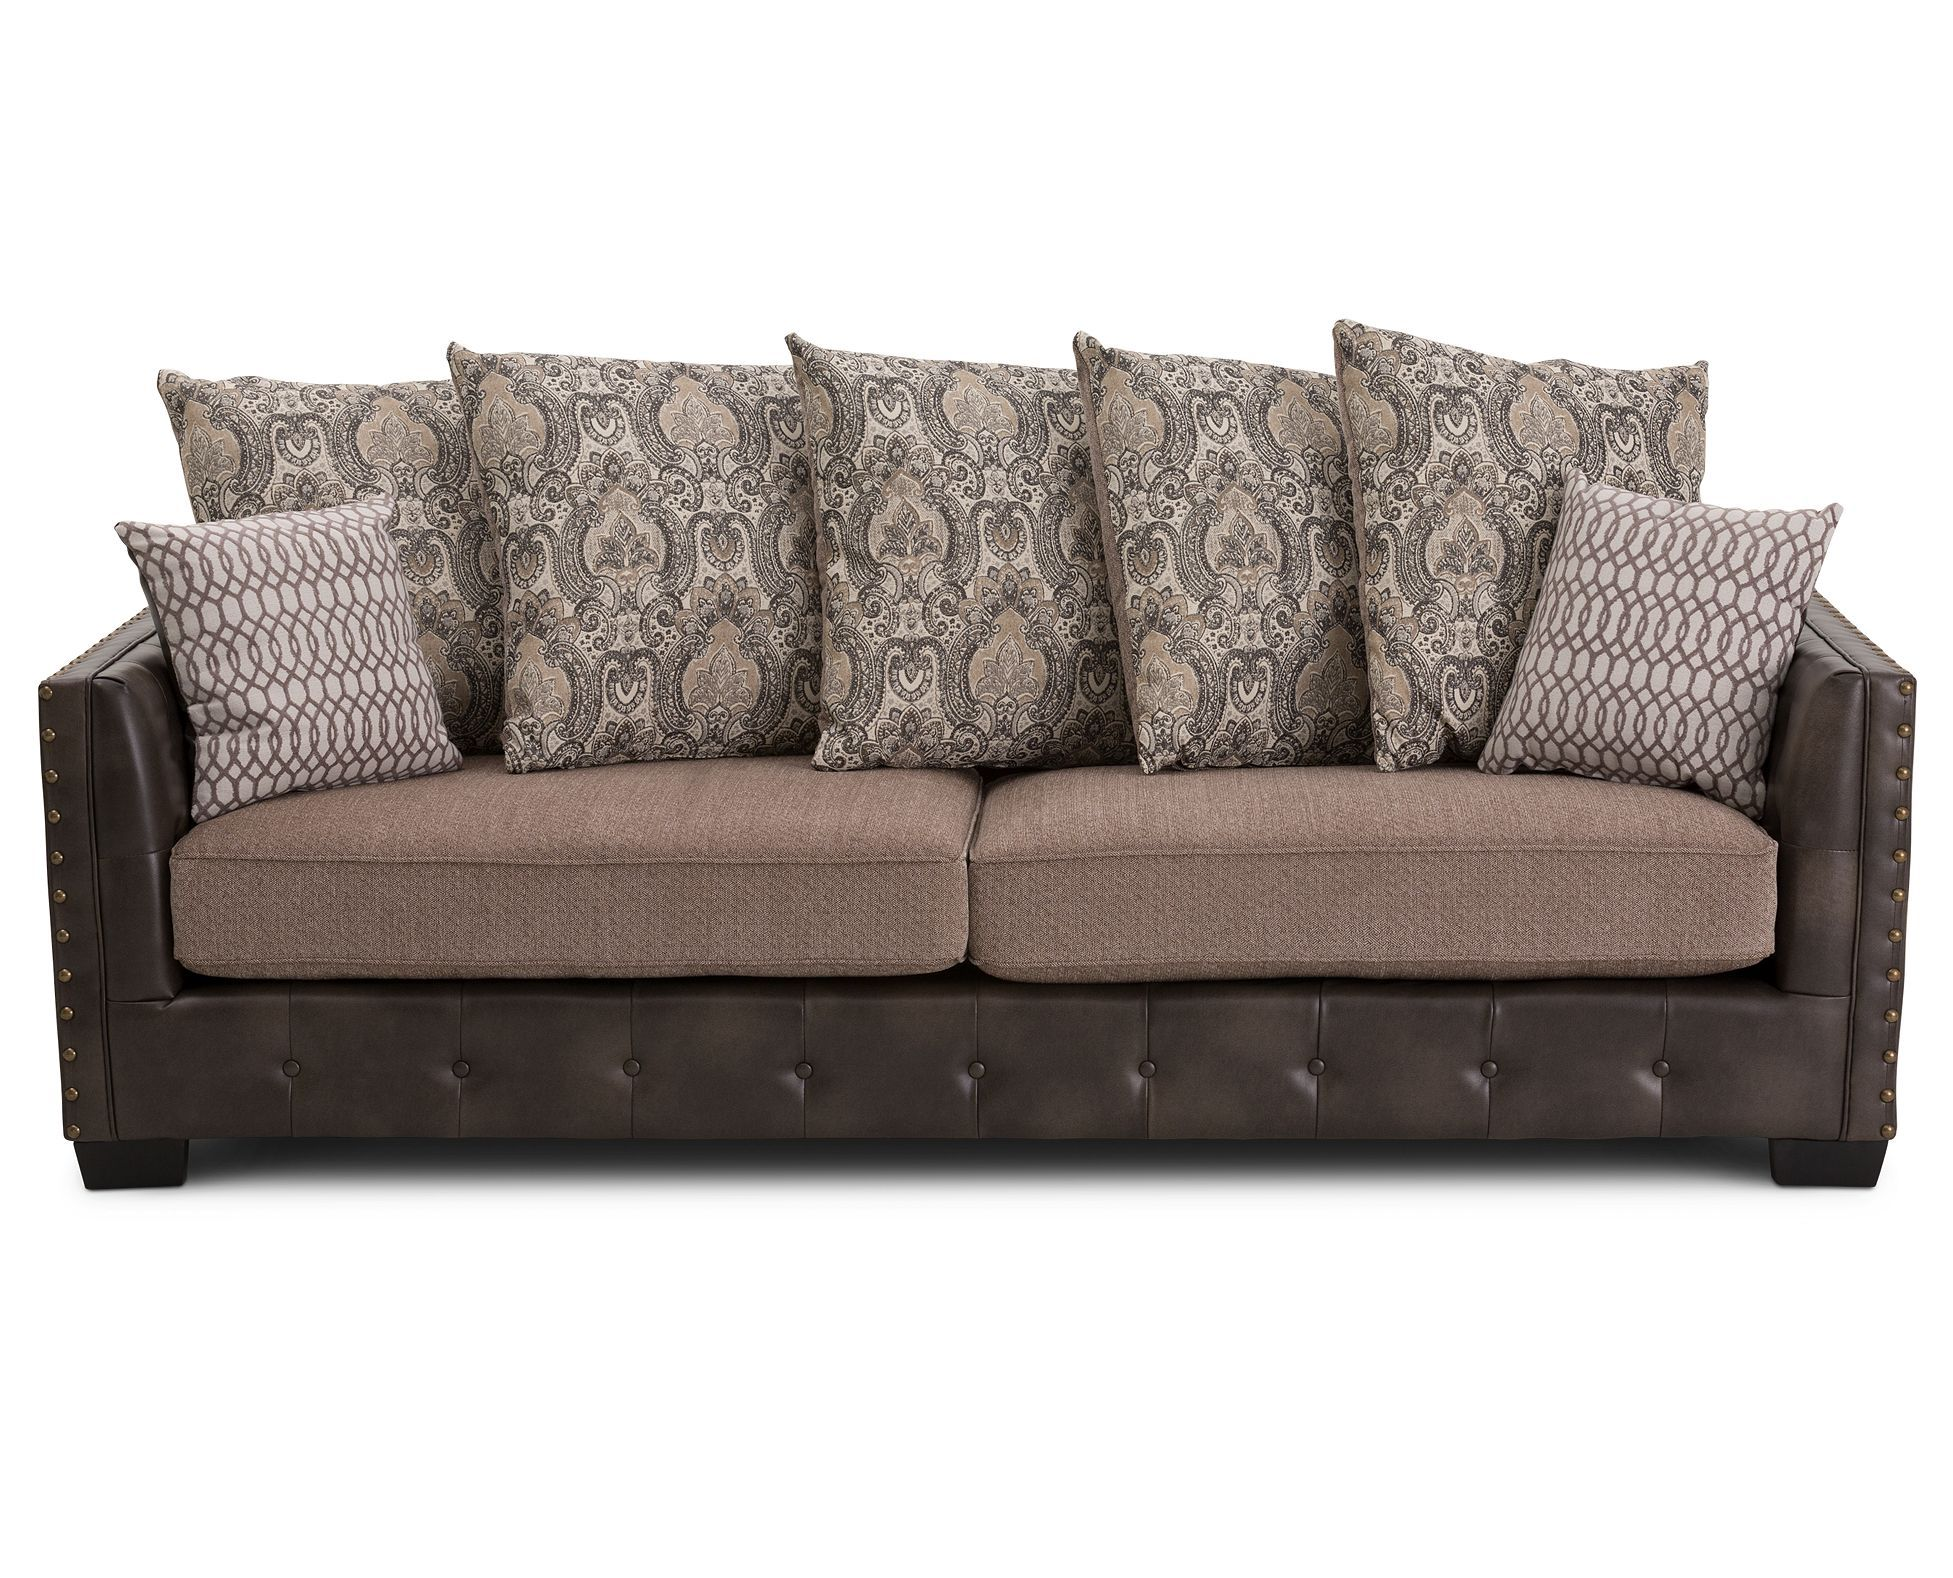 Best The Arlington Heights Sofa Features Button Tufting Chic 640 x 480